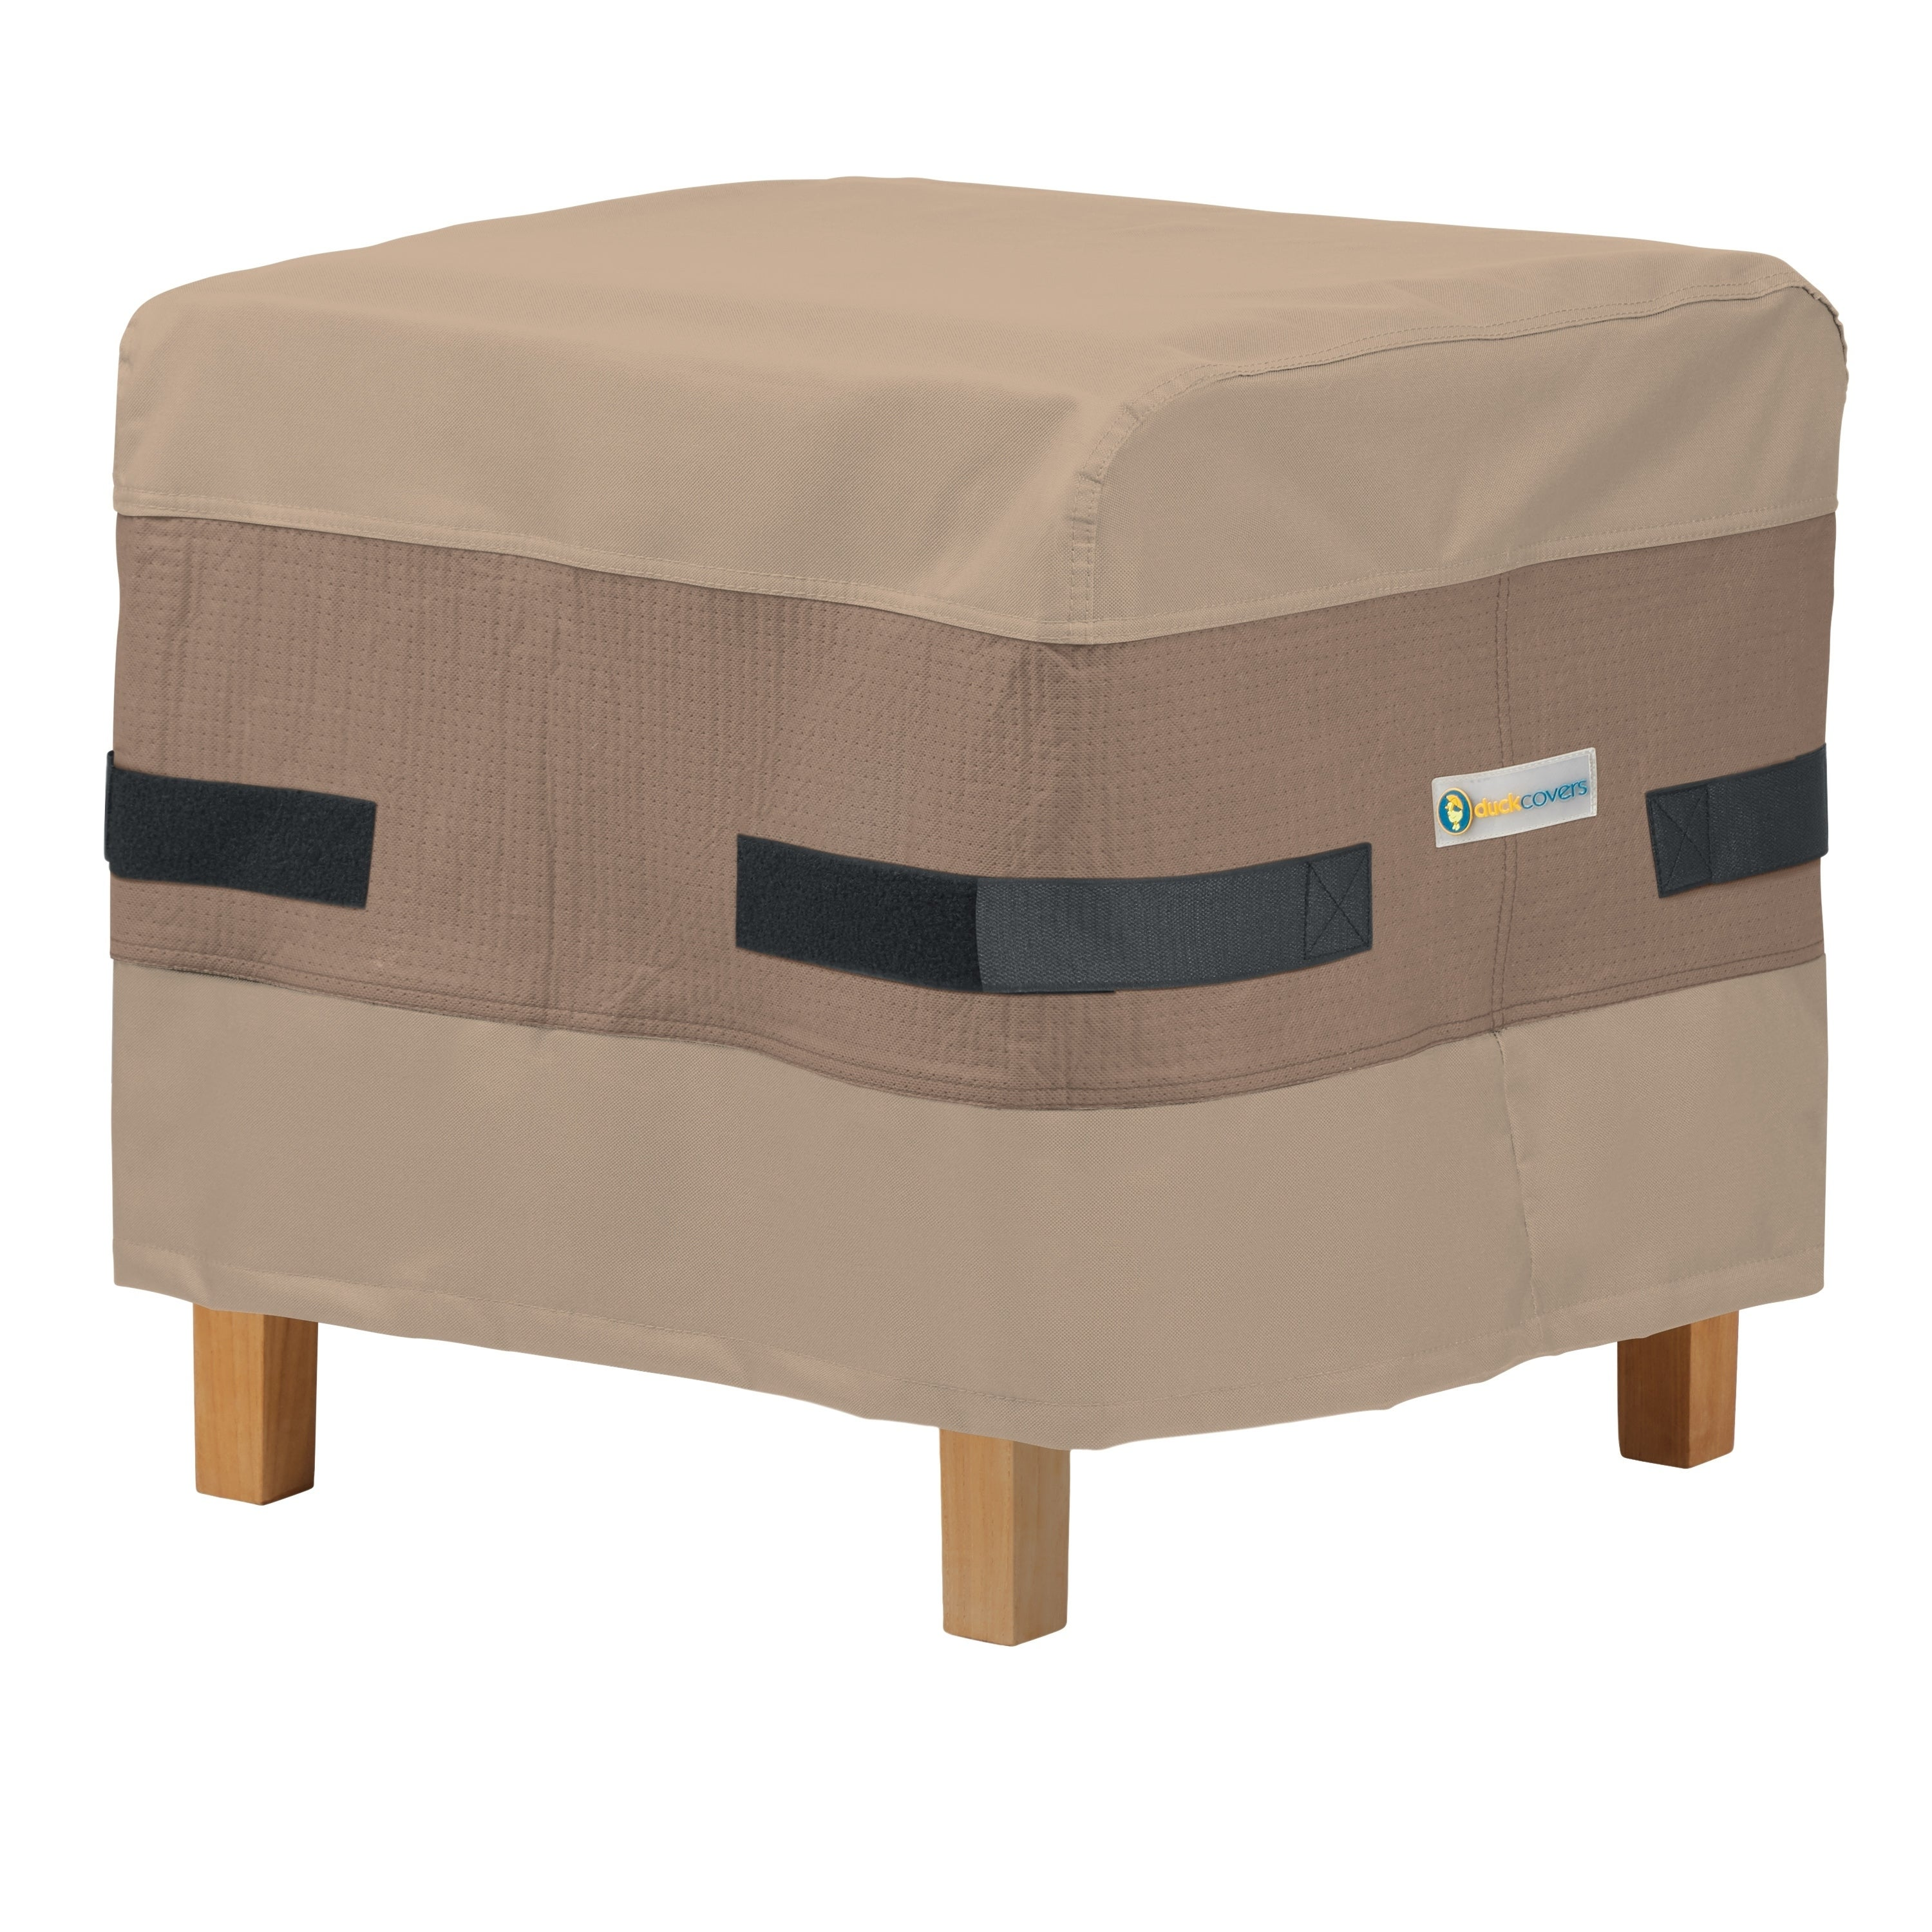 Covers Elegant Square Patio Ottoman